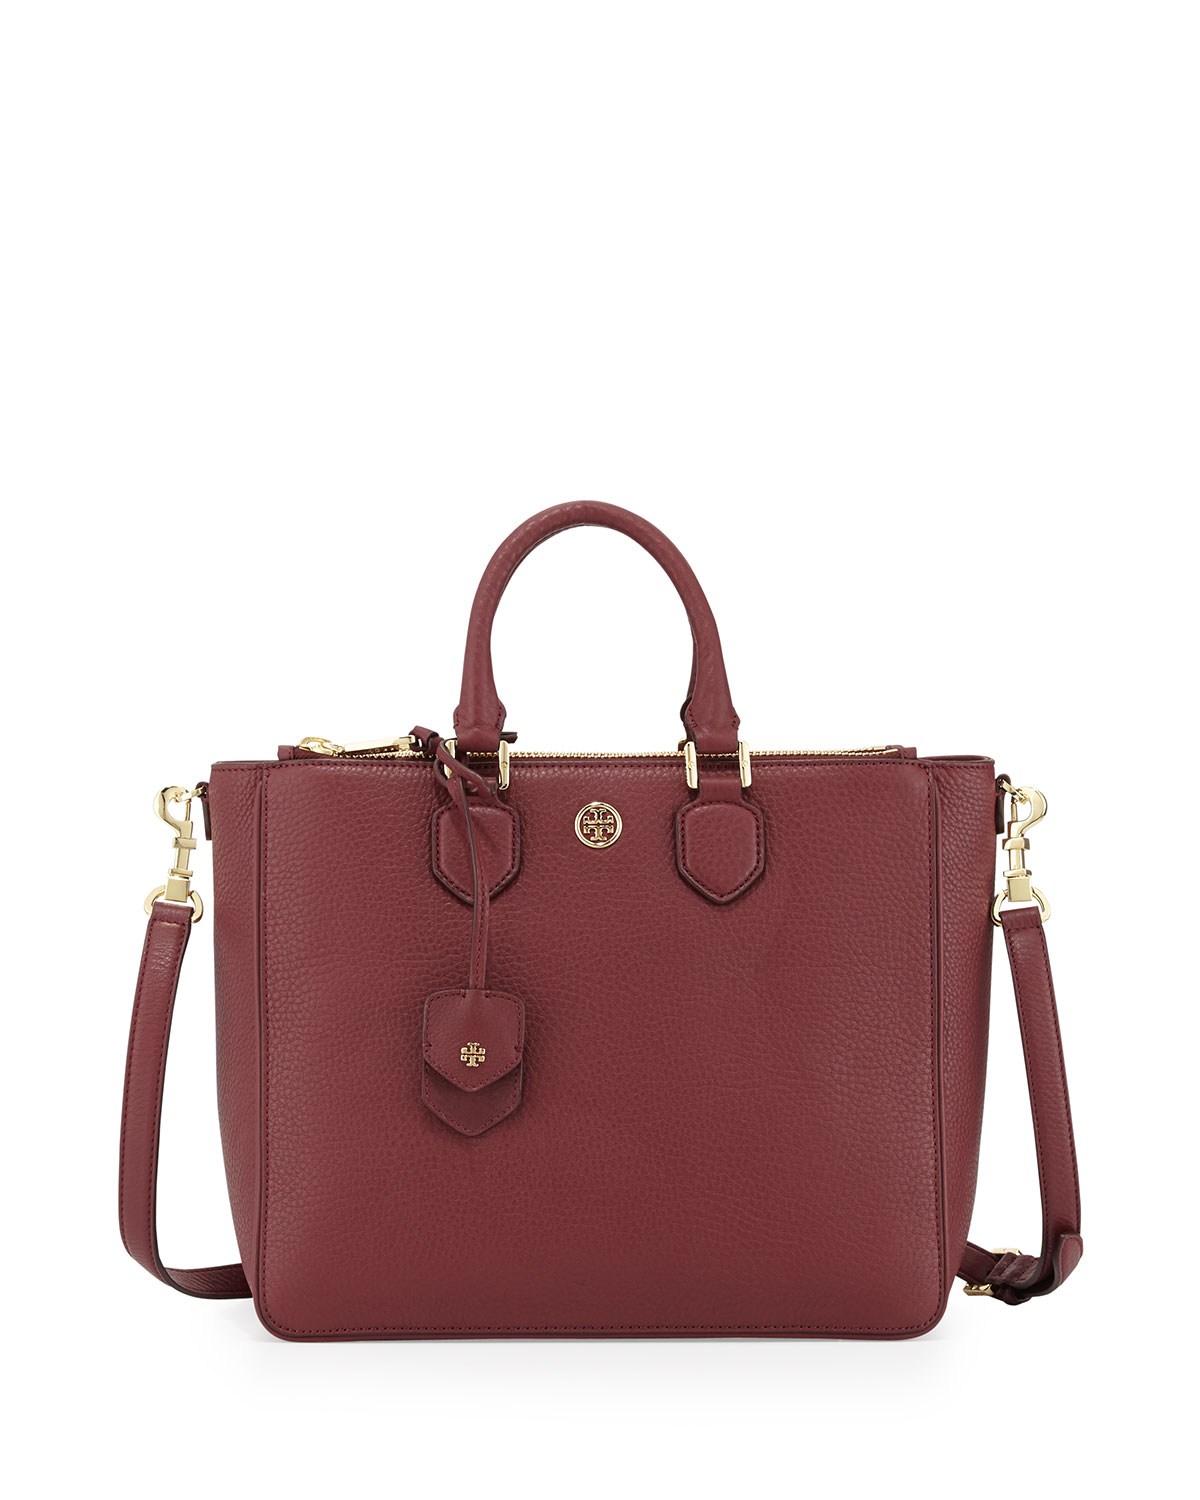 Tory Burch Robinson Pebbled Square Tote Bag Deep Berry In